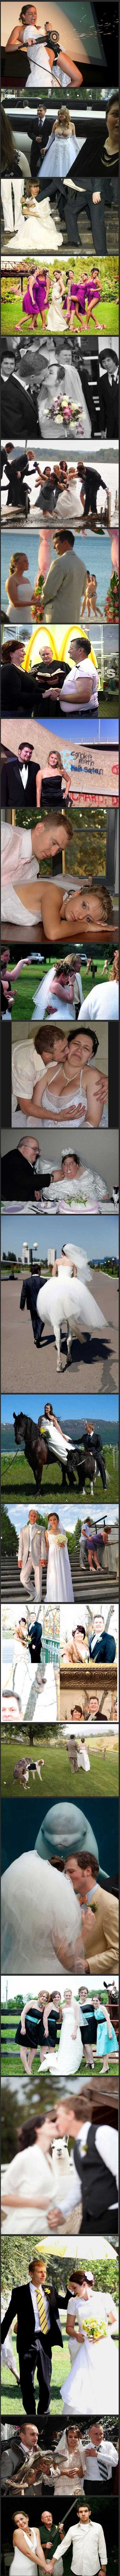 Mostly unfortunate #wedding photos.. So so bad and yet so funny! CAN'T STOP LAUGHING